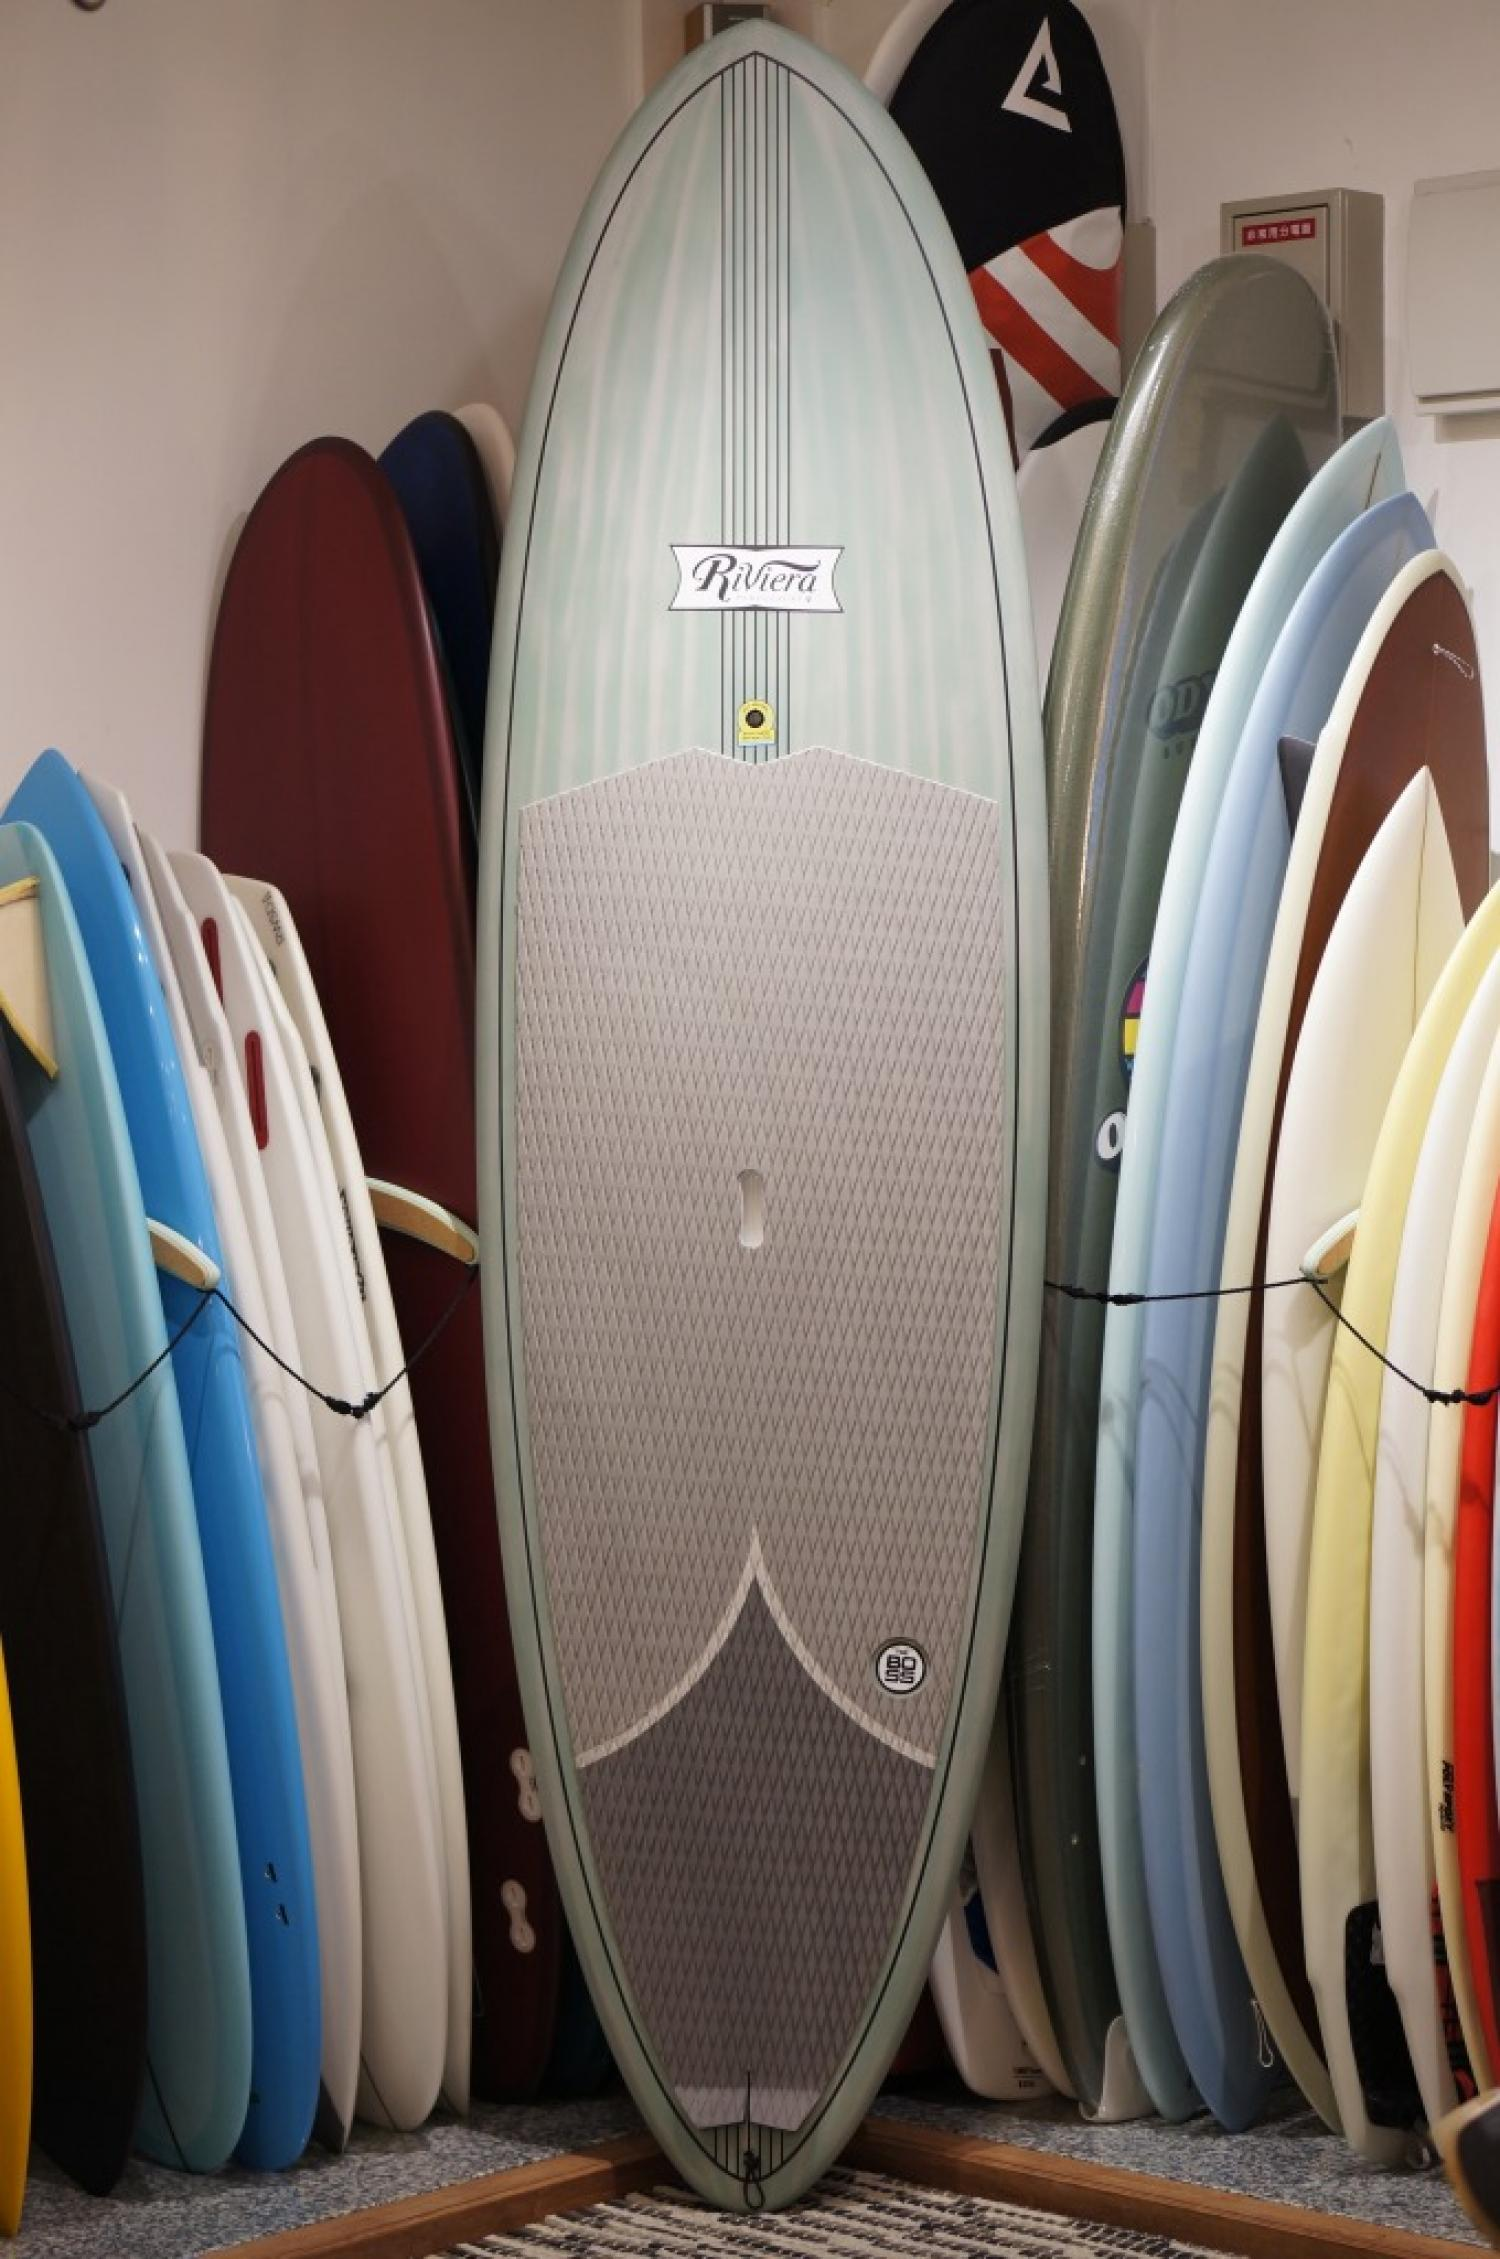 RIVIERA Paddle Surf THE BOSS 9.0